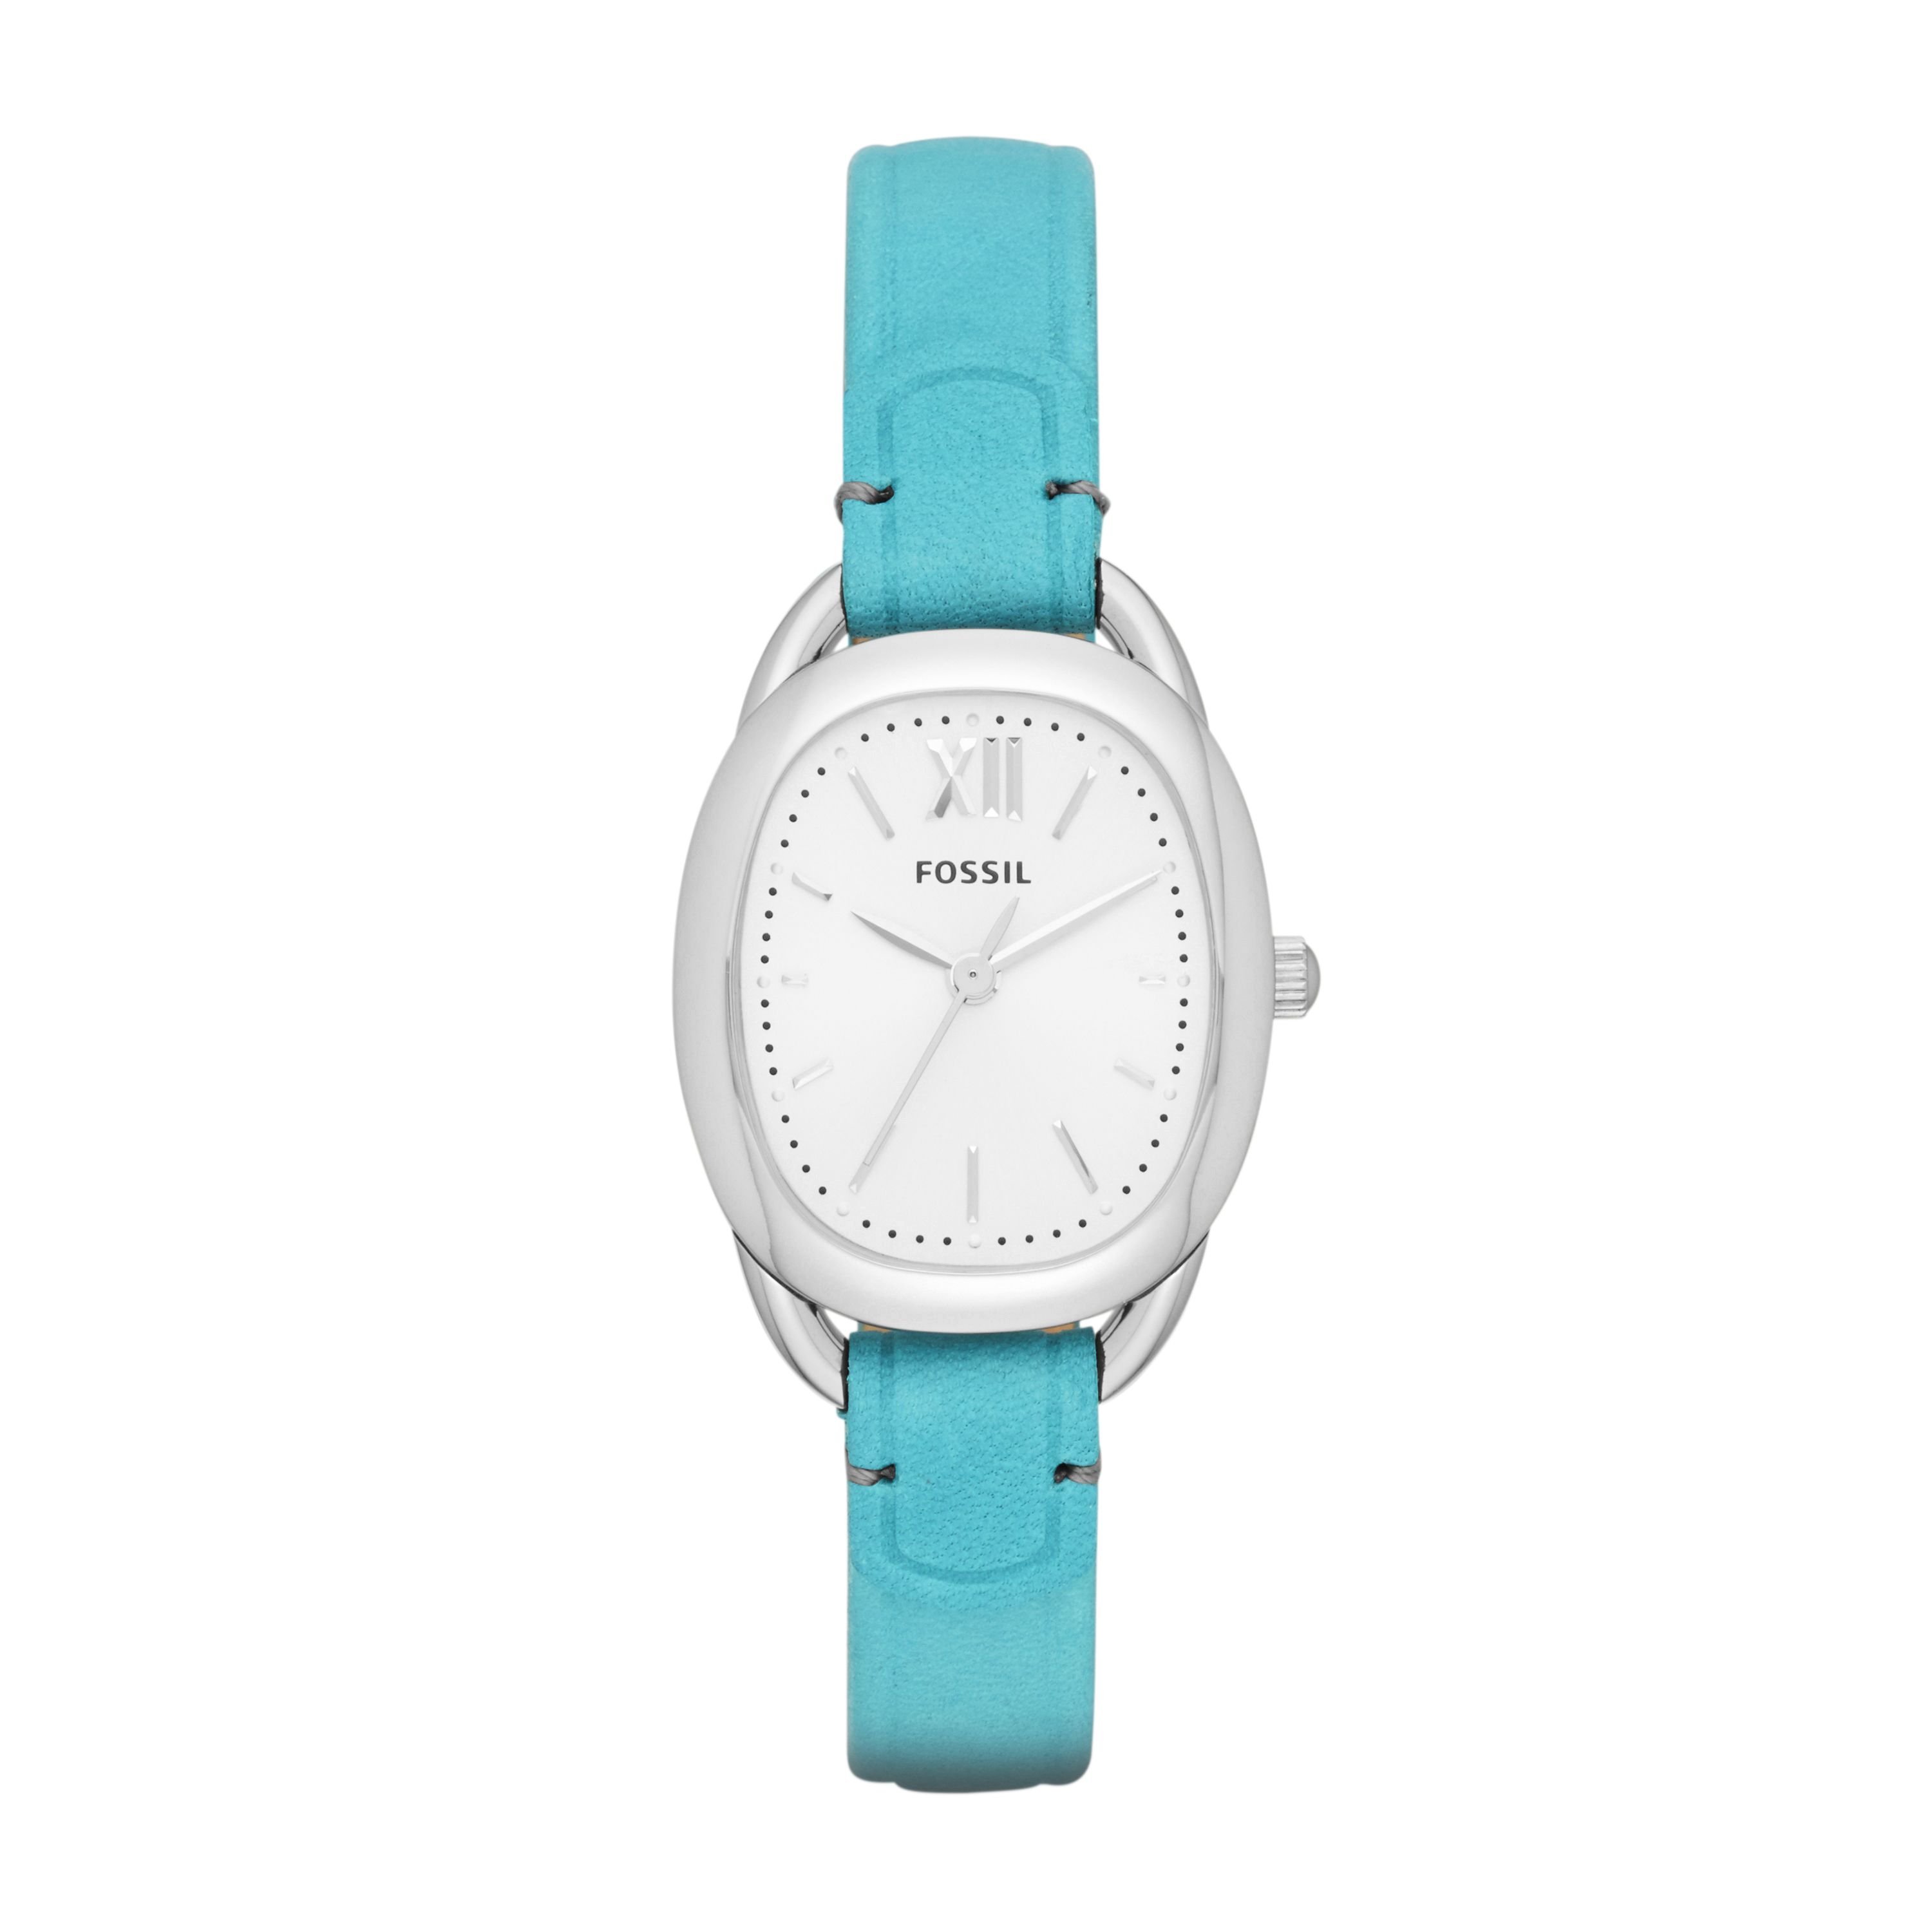 ES3559 Sculptor ladies oval blue leather watch